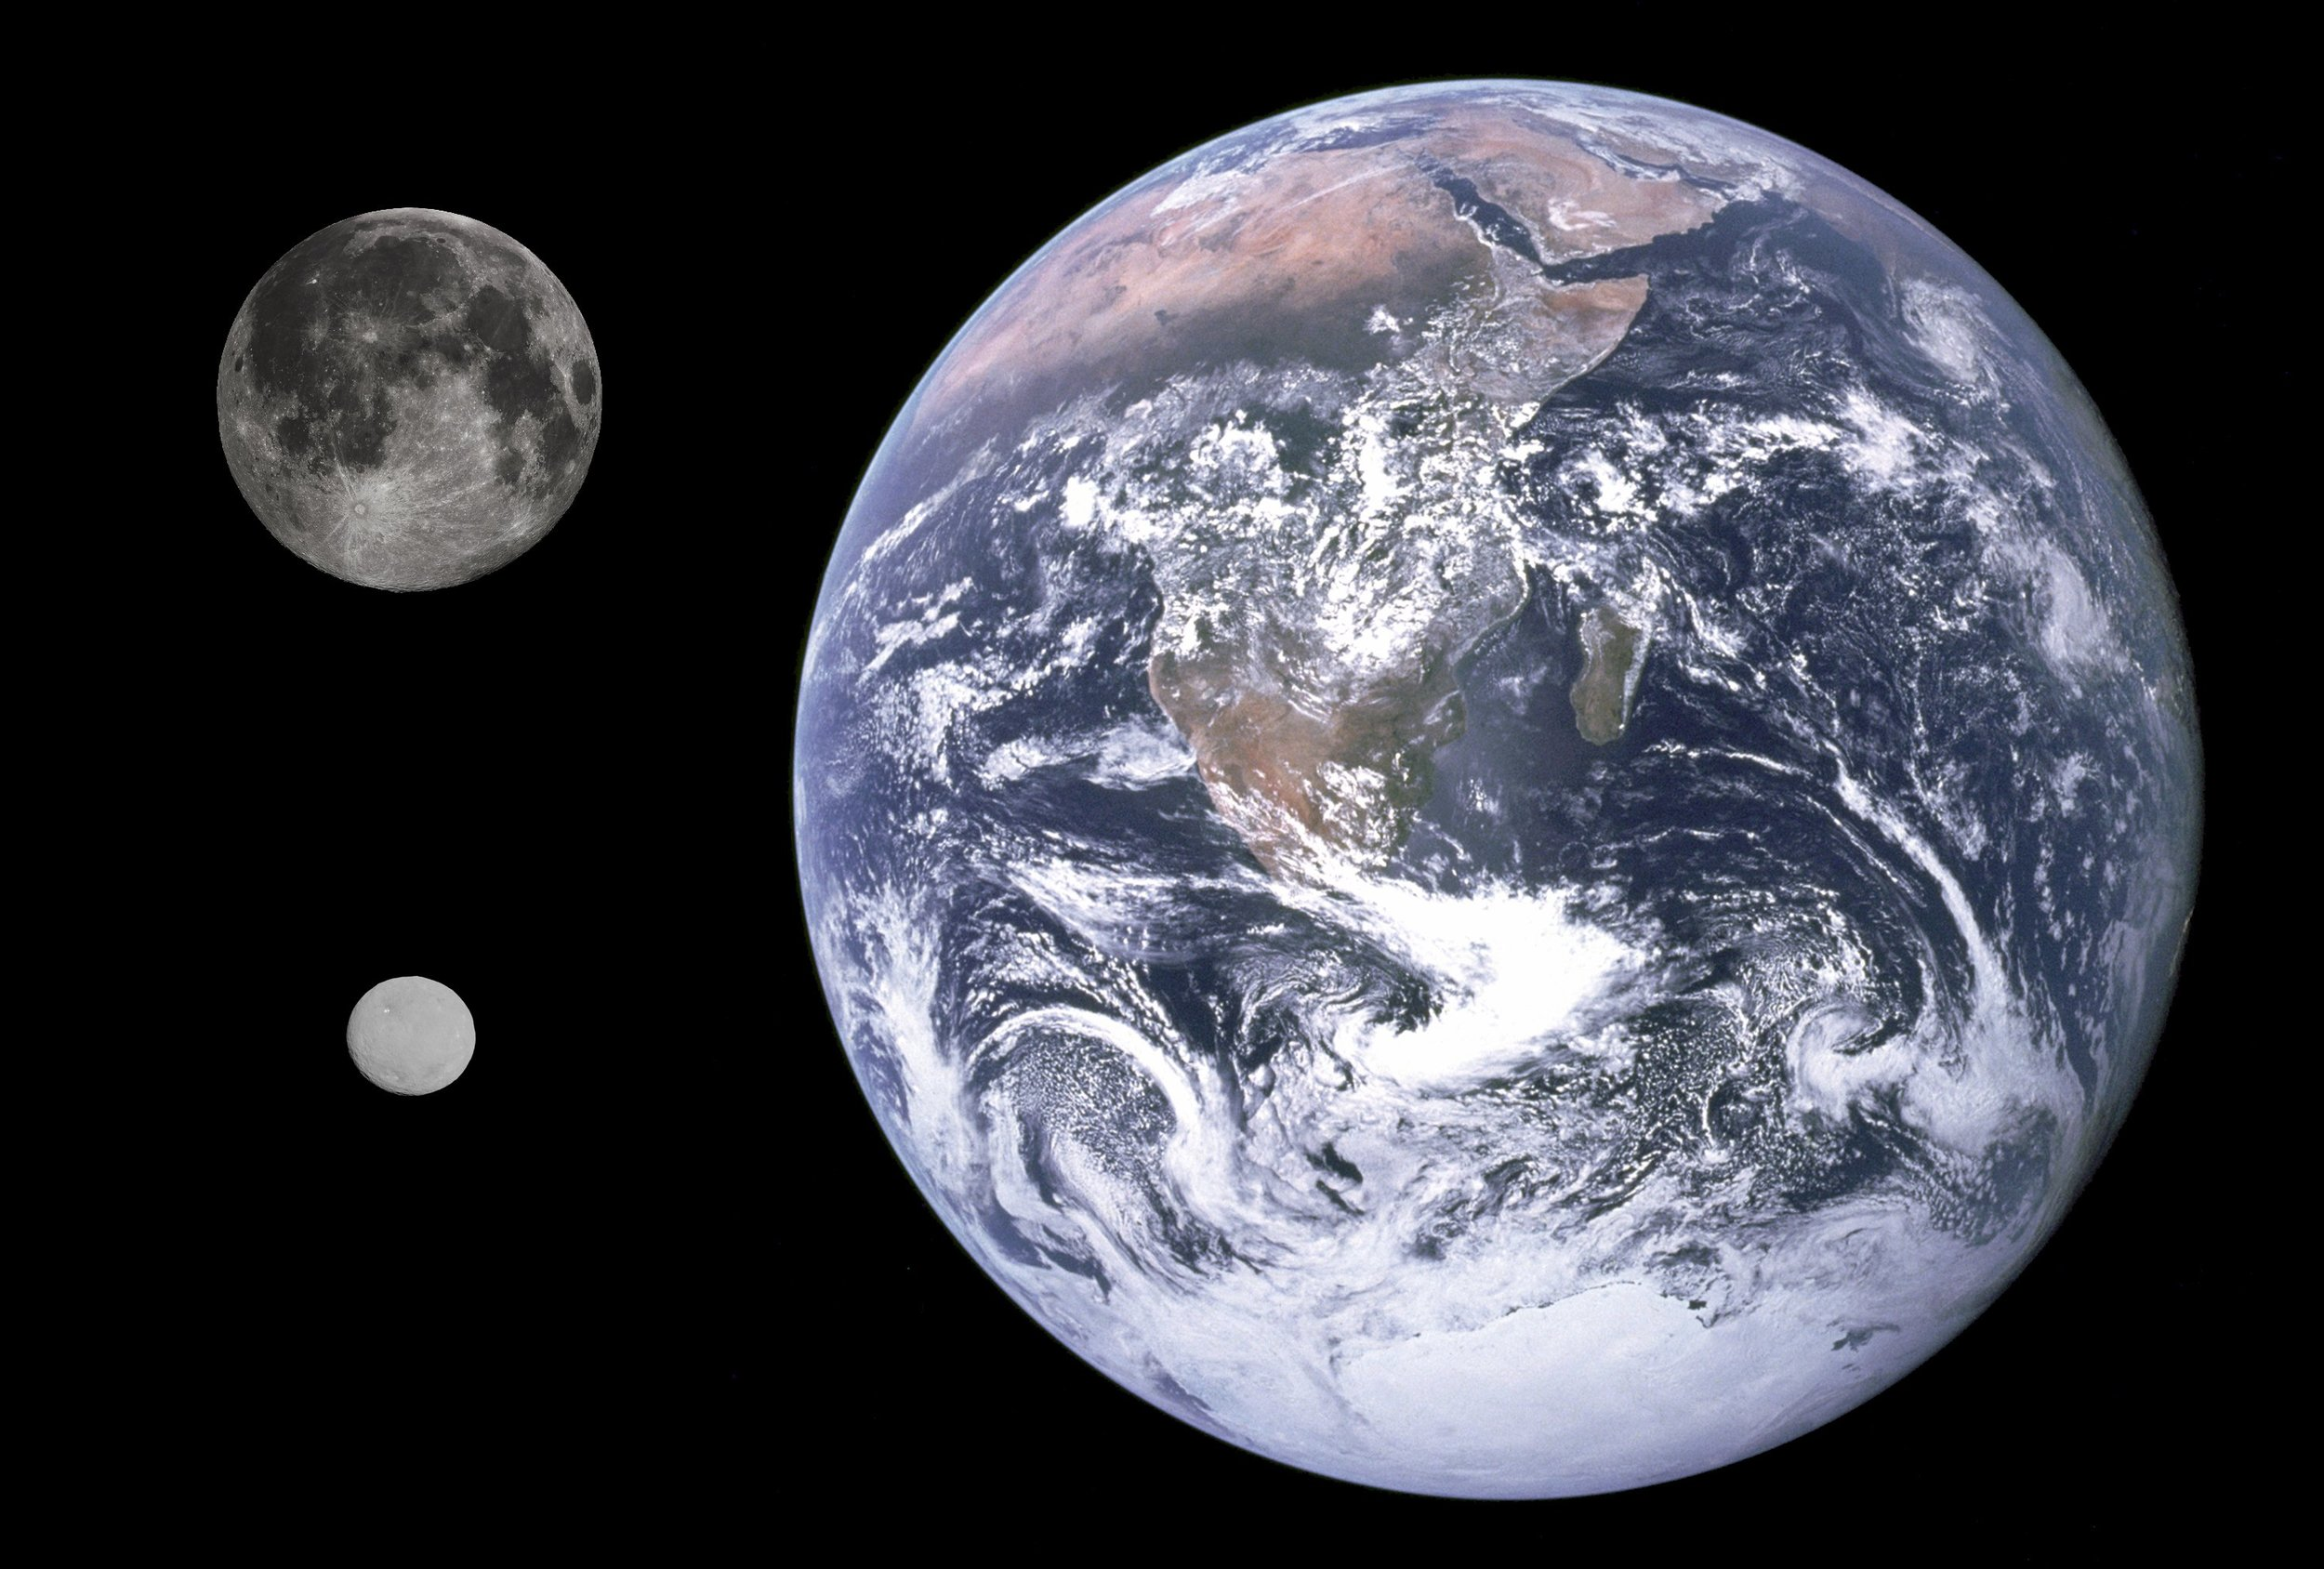 Image depicting the relative size of Ceres (bottom left) compared to Earth and Earth's Moon.